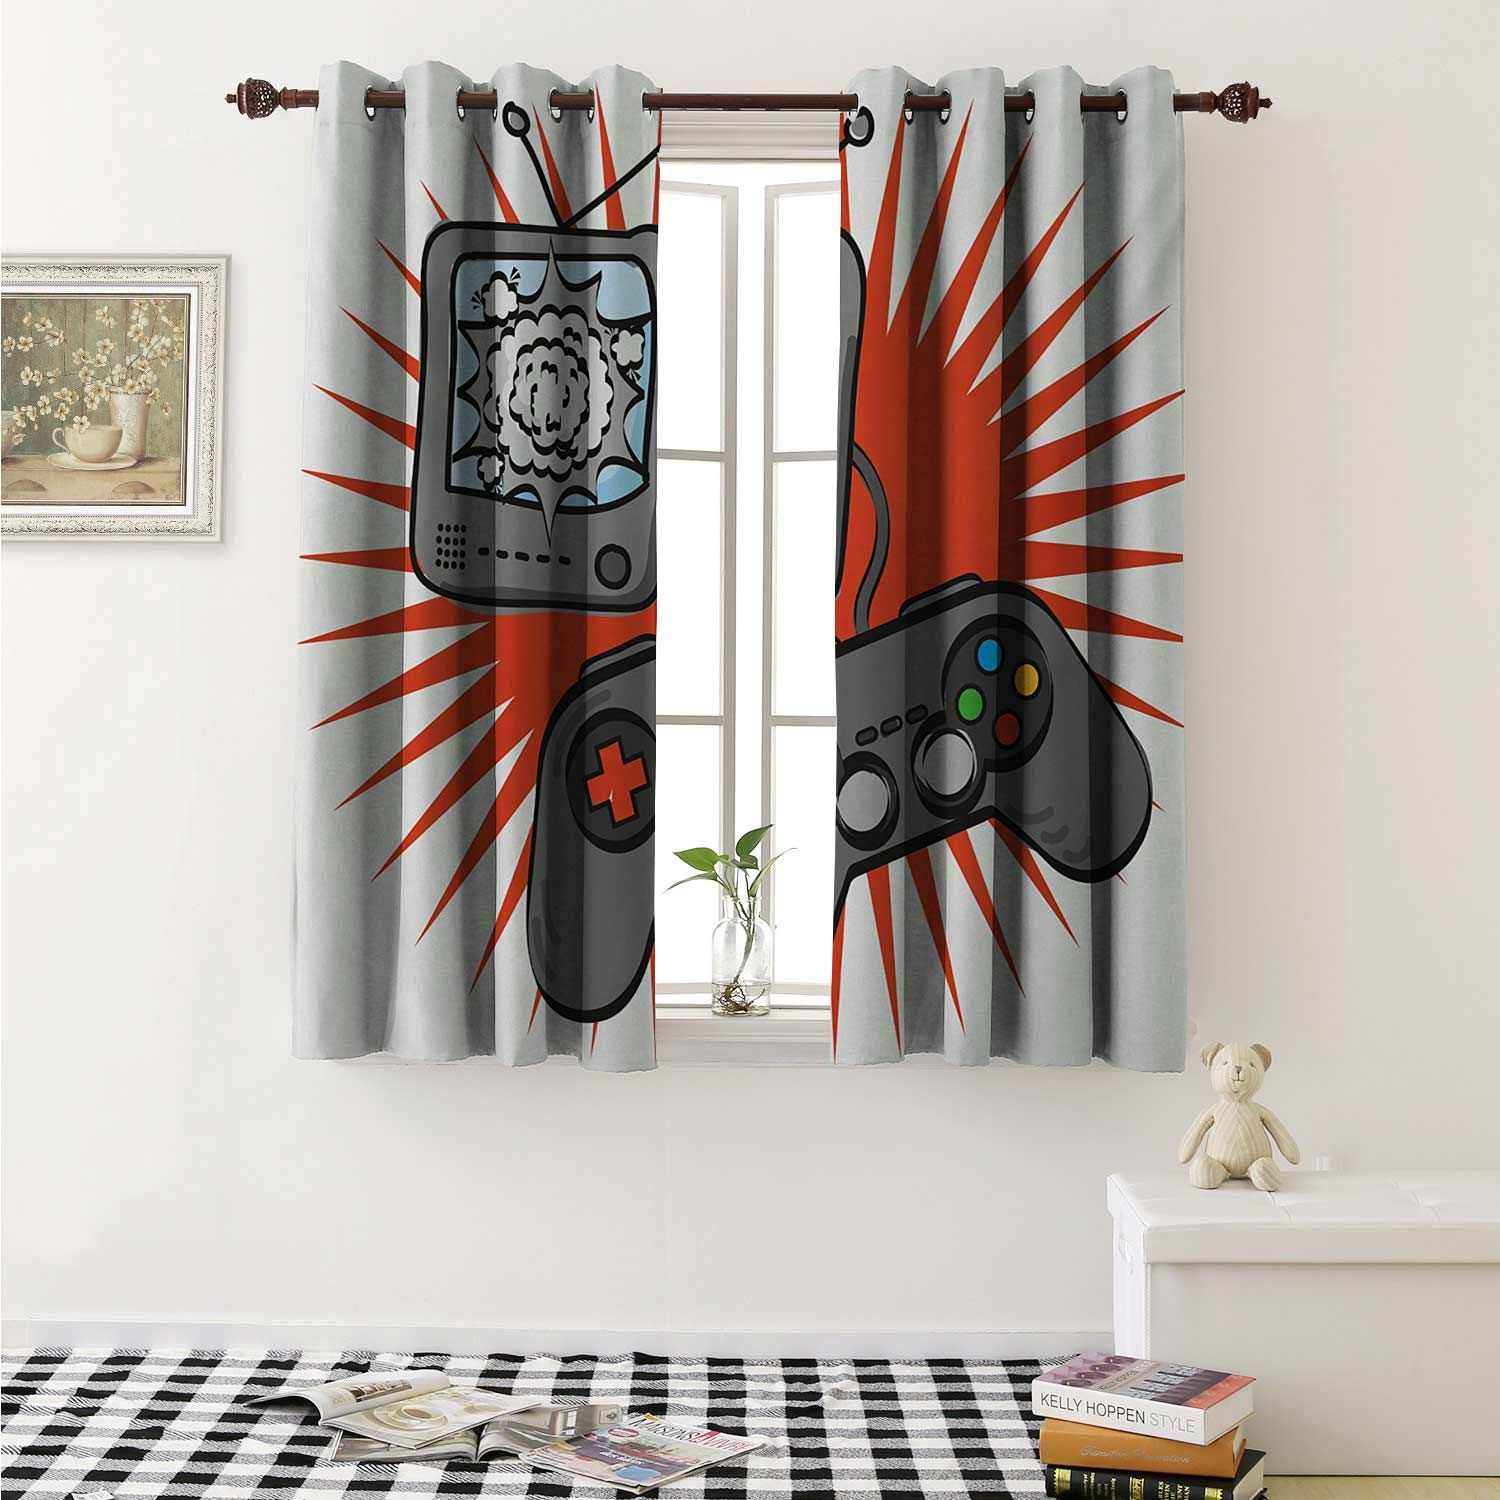 shenglv Boys Room Decorative Curtains for Living Room Video Games Themed Design in Retro Style Gamepad Console Entertainment Curtains Kids Room W72 x L72 Inch Orange Grey White by shenglv